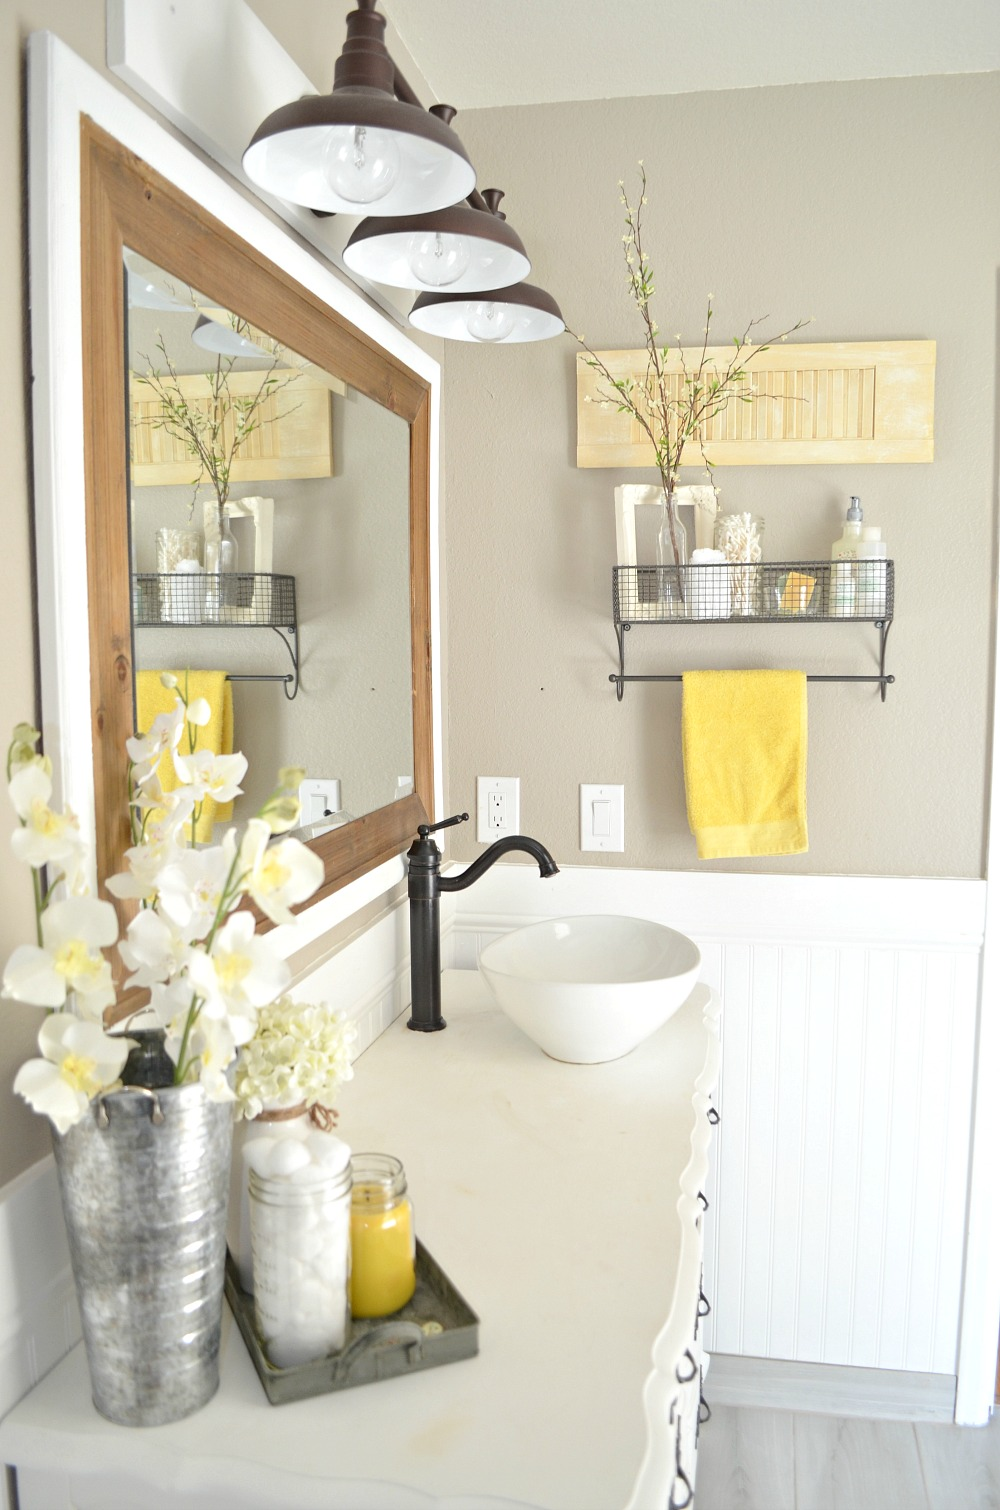 How to easily mix vintage and modern decor little for Pics of bathroom decor